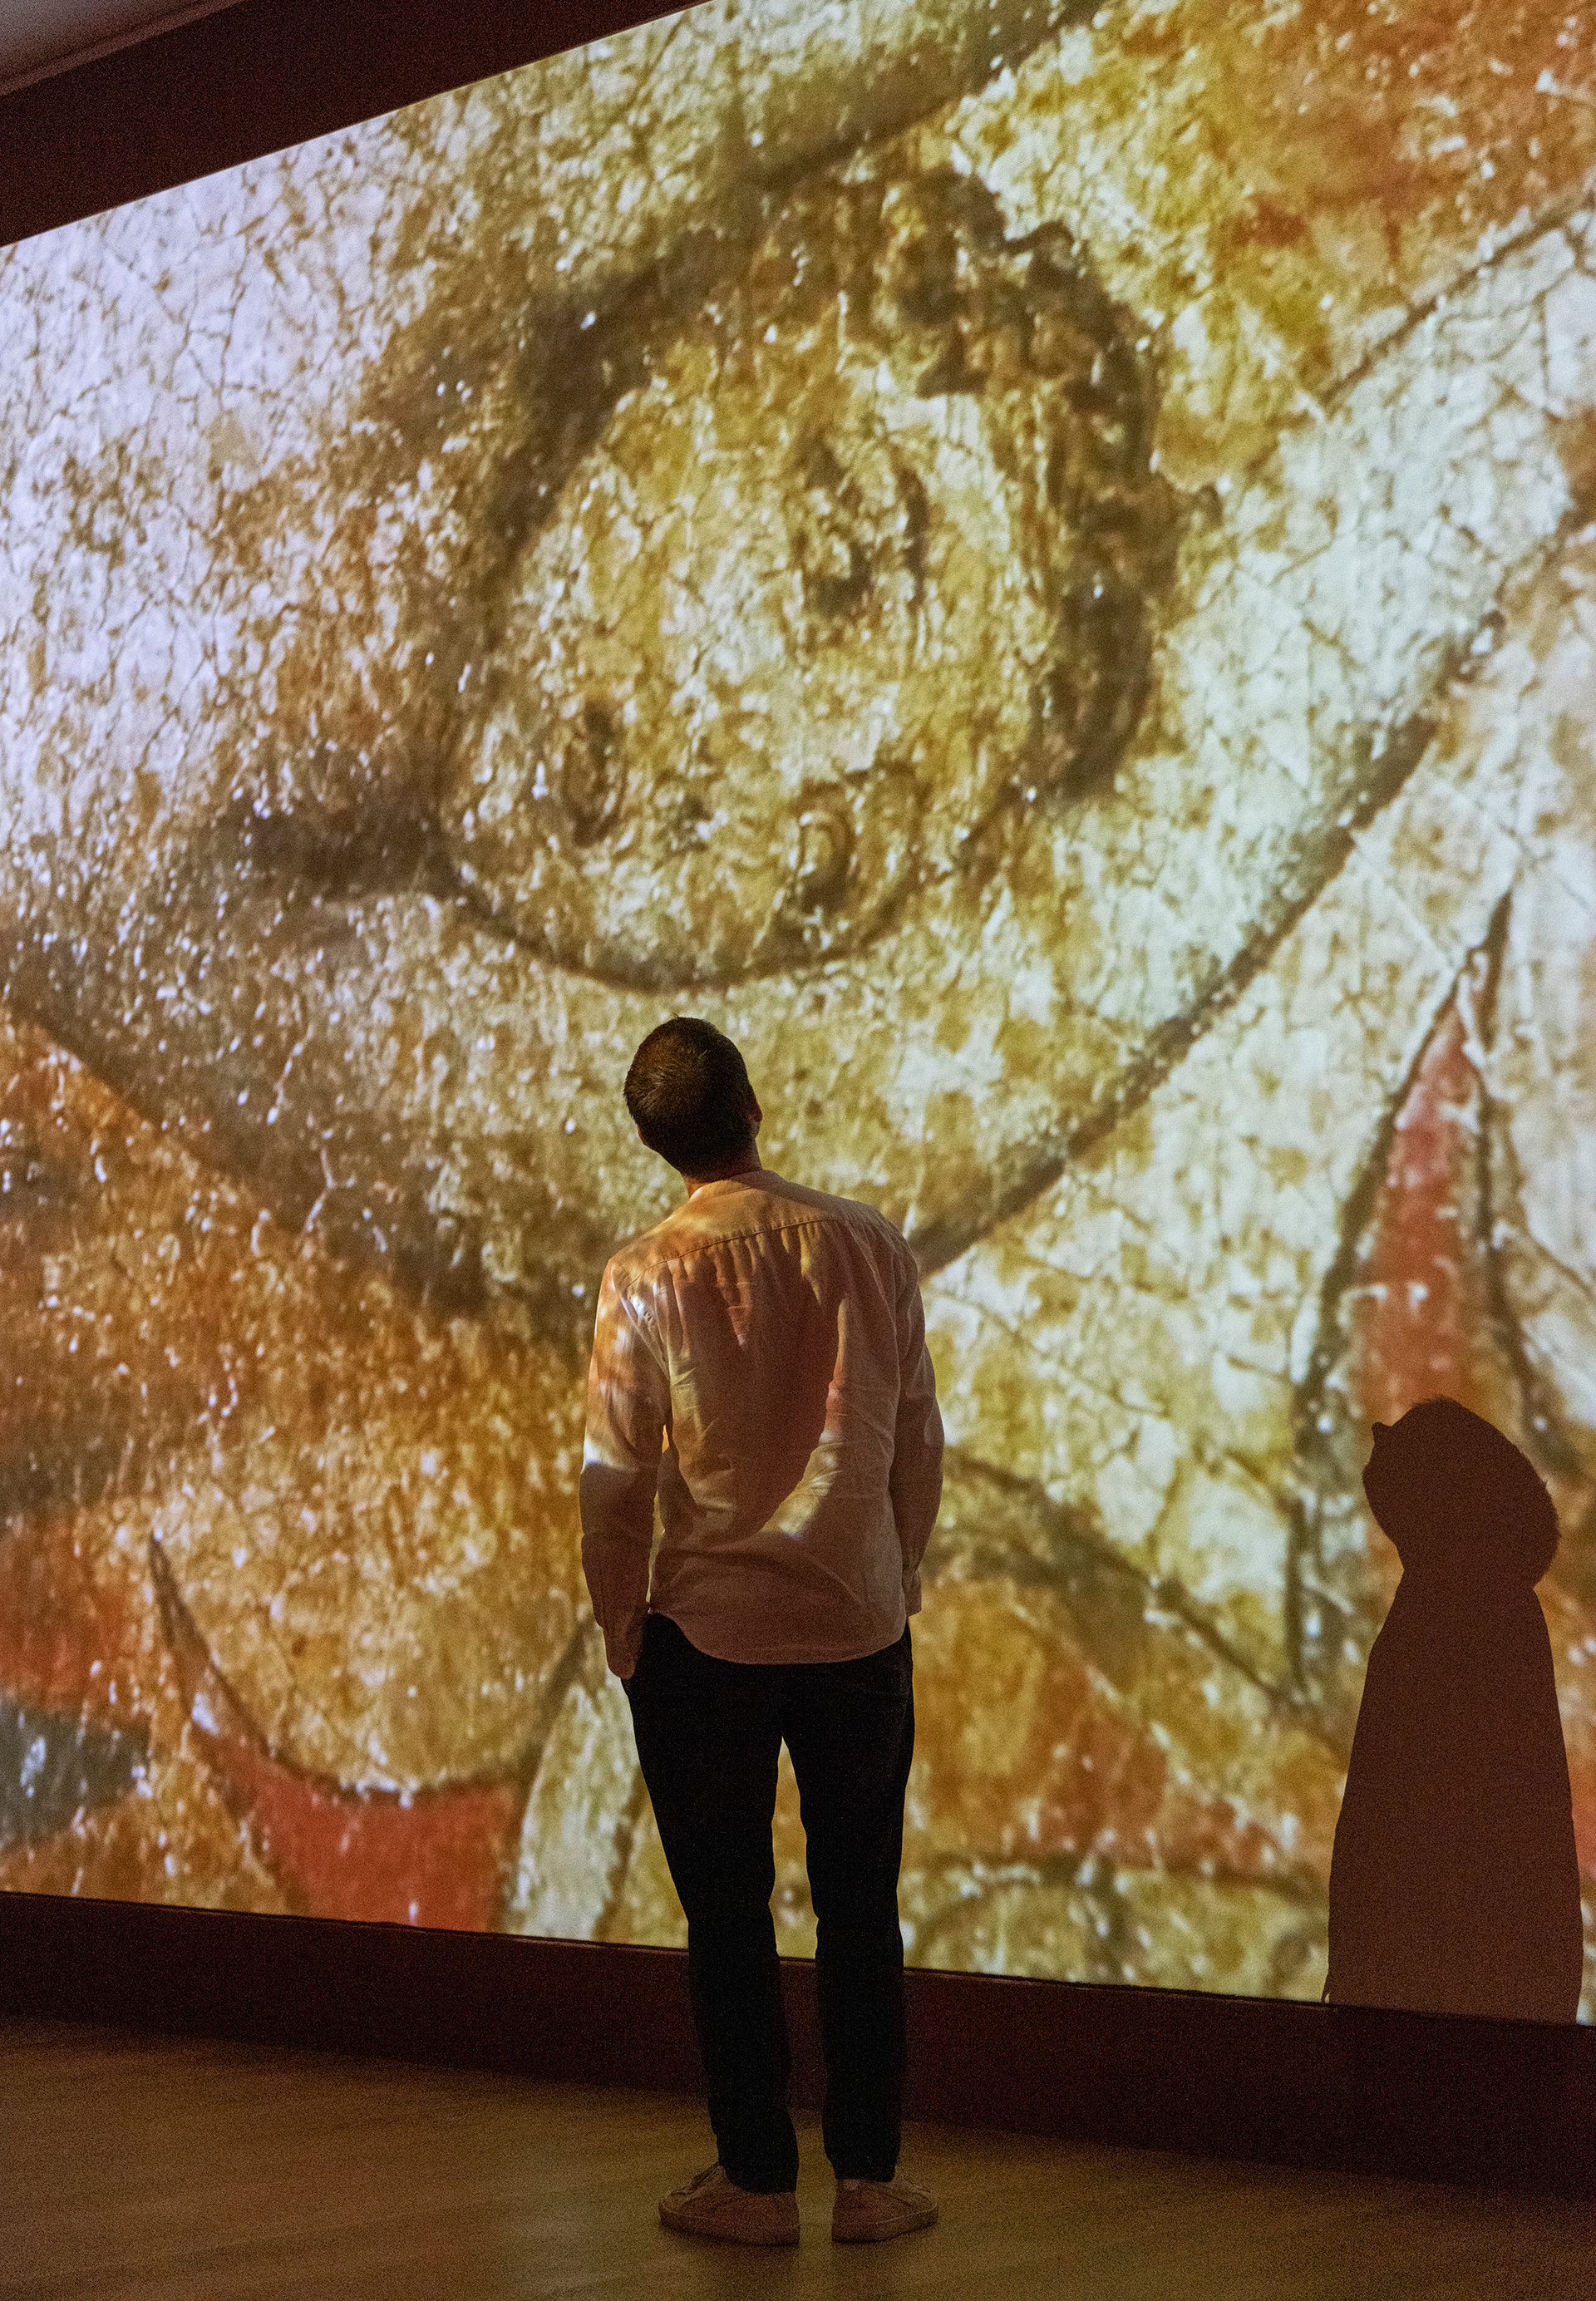 William Blake at Tate Britain, wall projection view | Largest survey show of work by William Blake | STIRworld